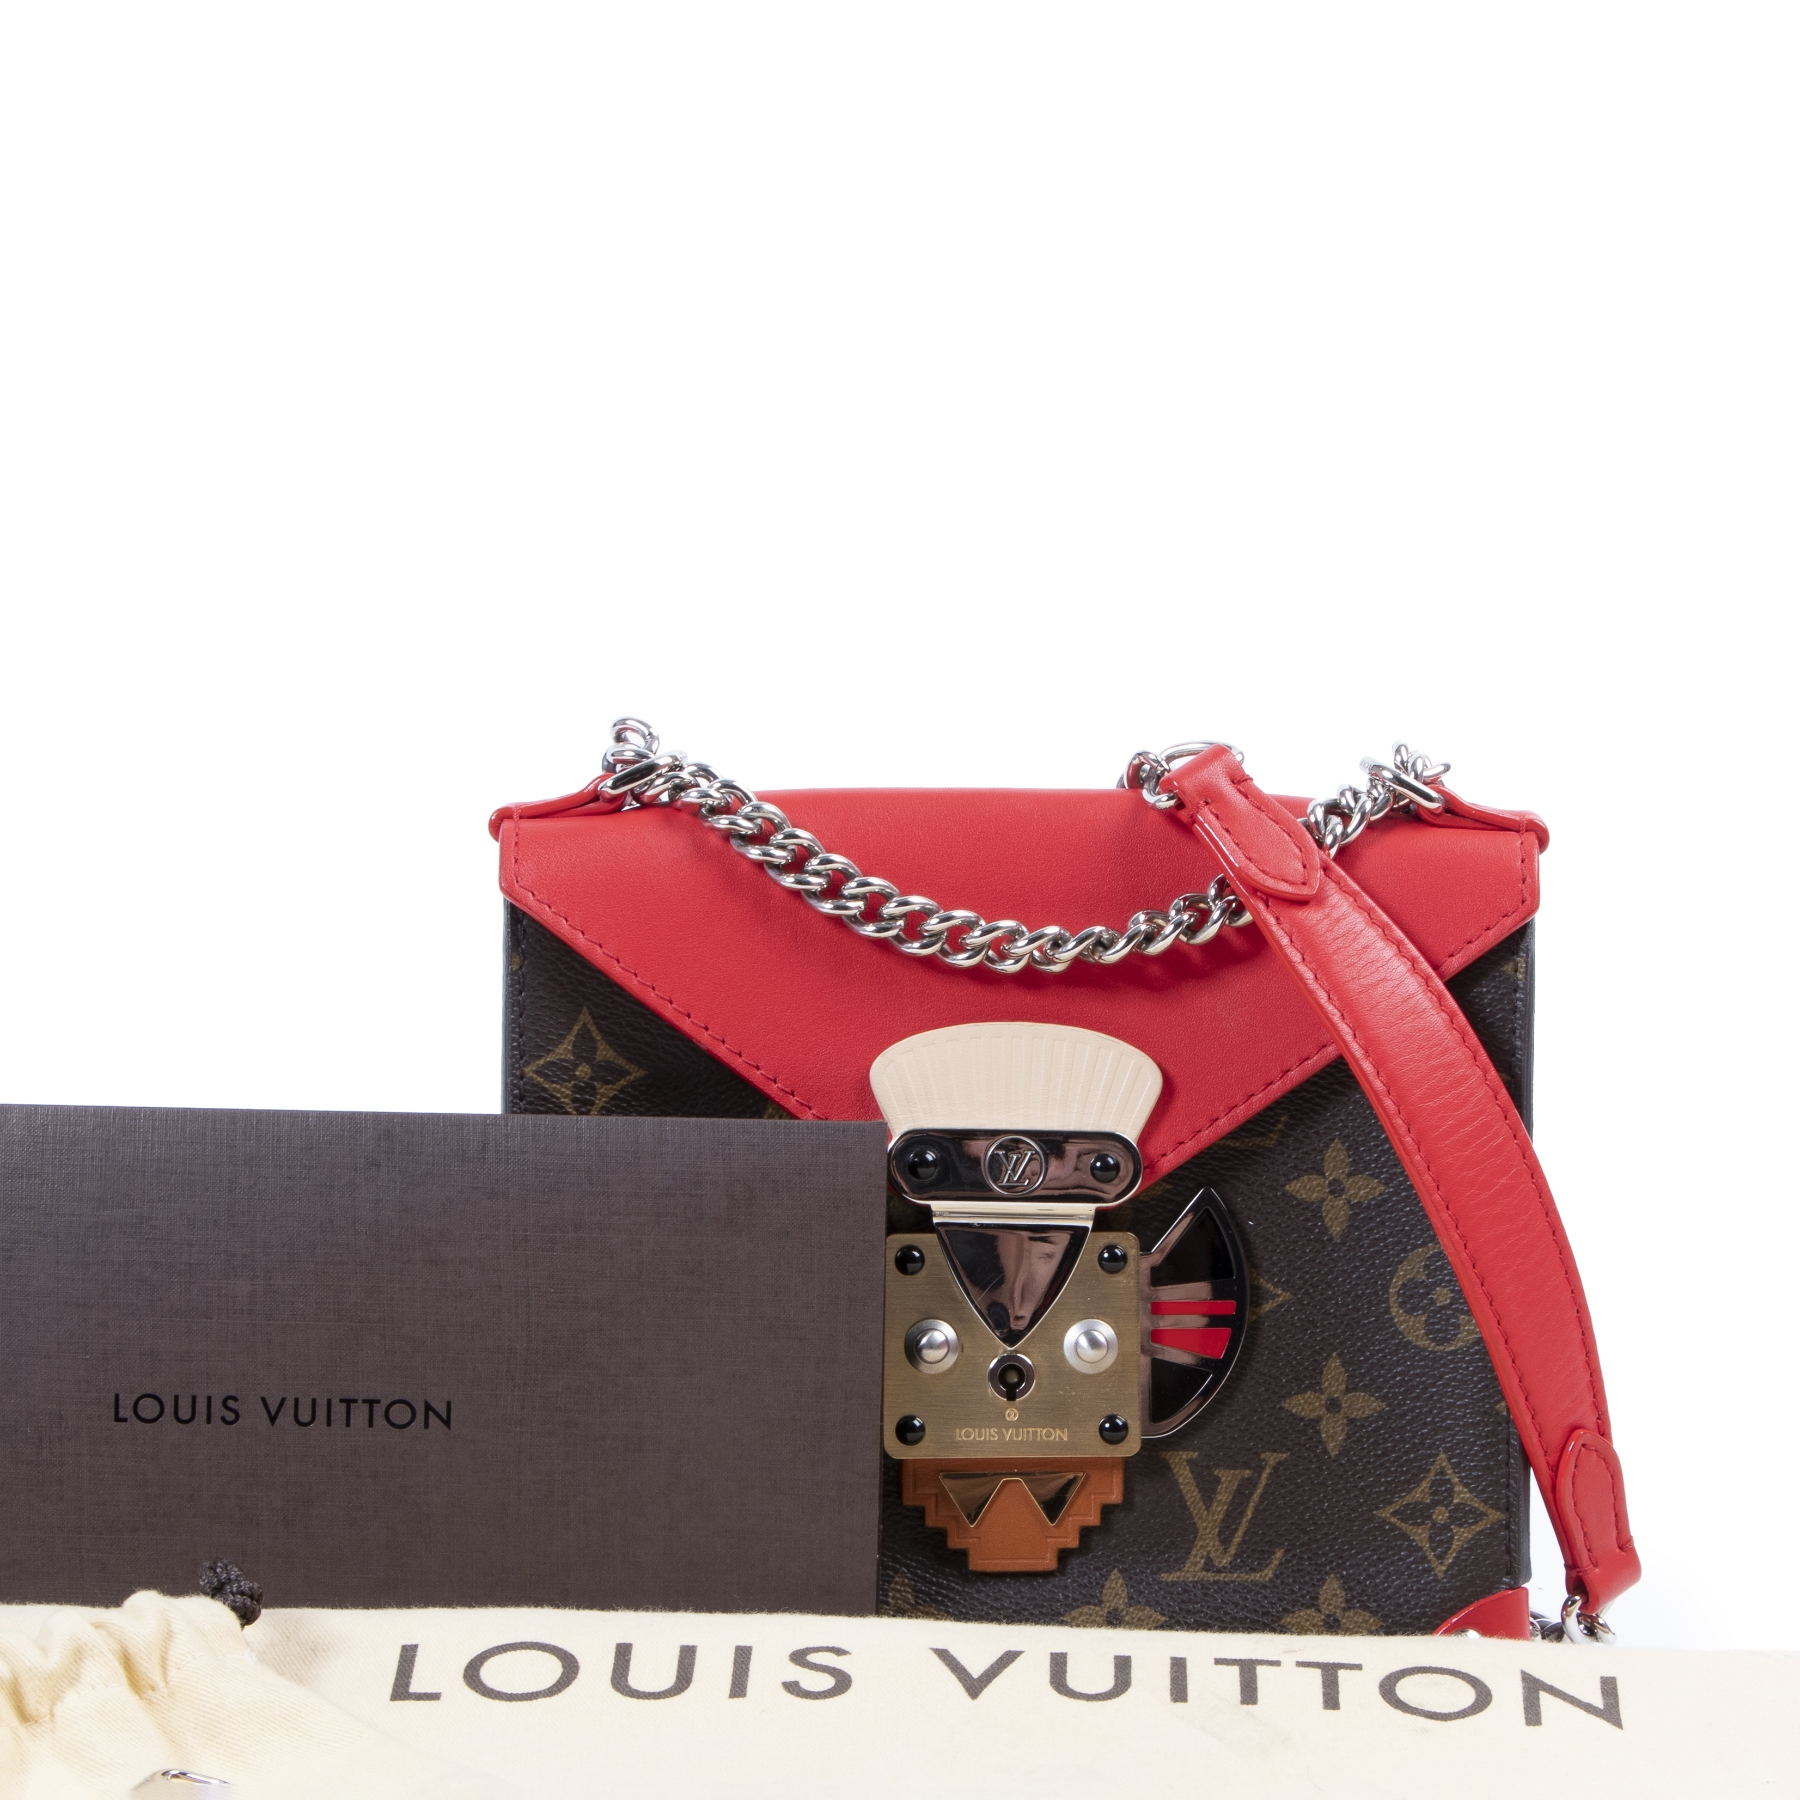 We buy and sell your authentic Louis Vuitton Monogram Pochette Mask PM Crossbody bag